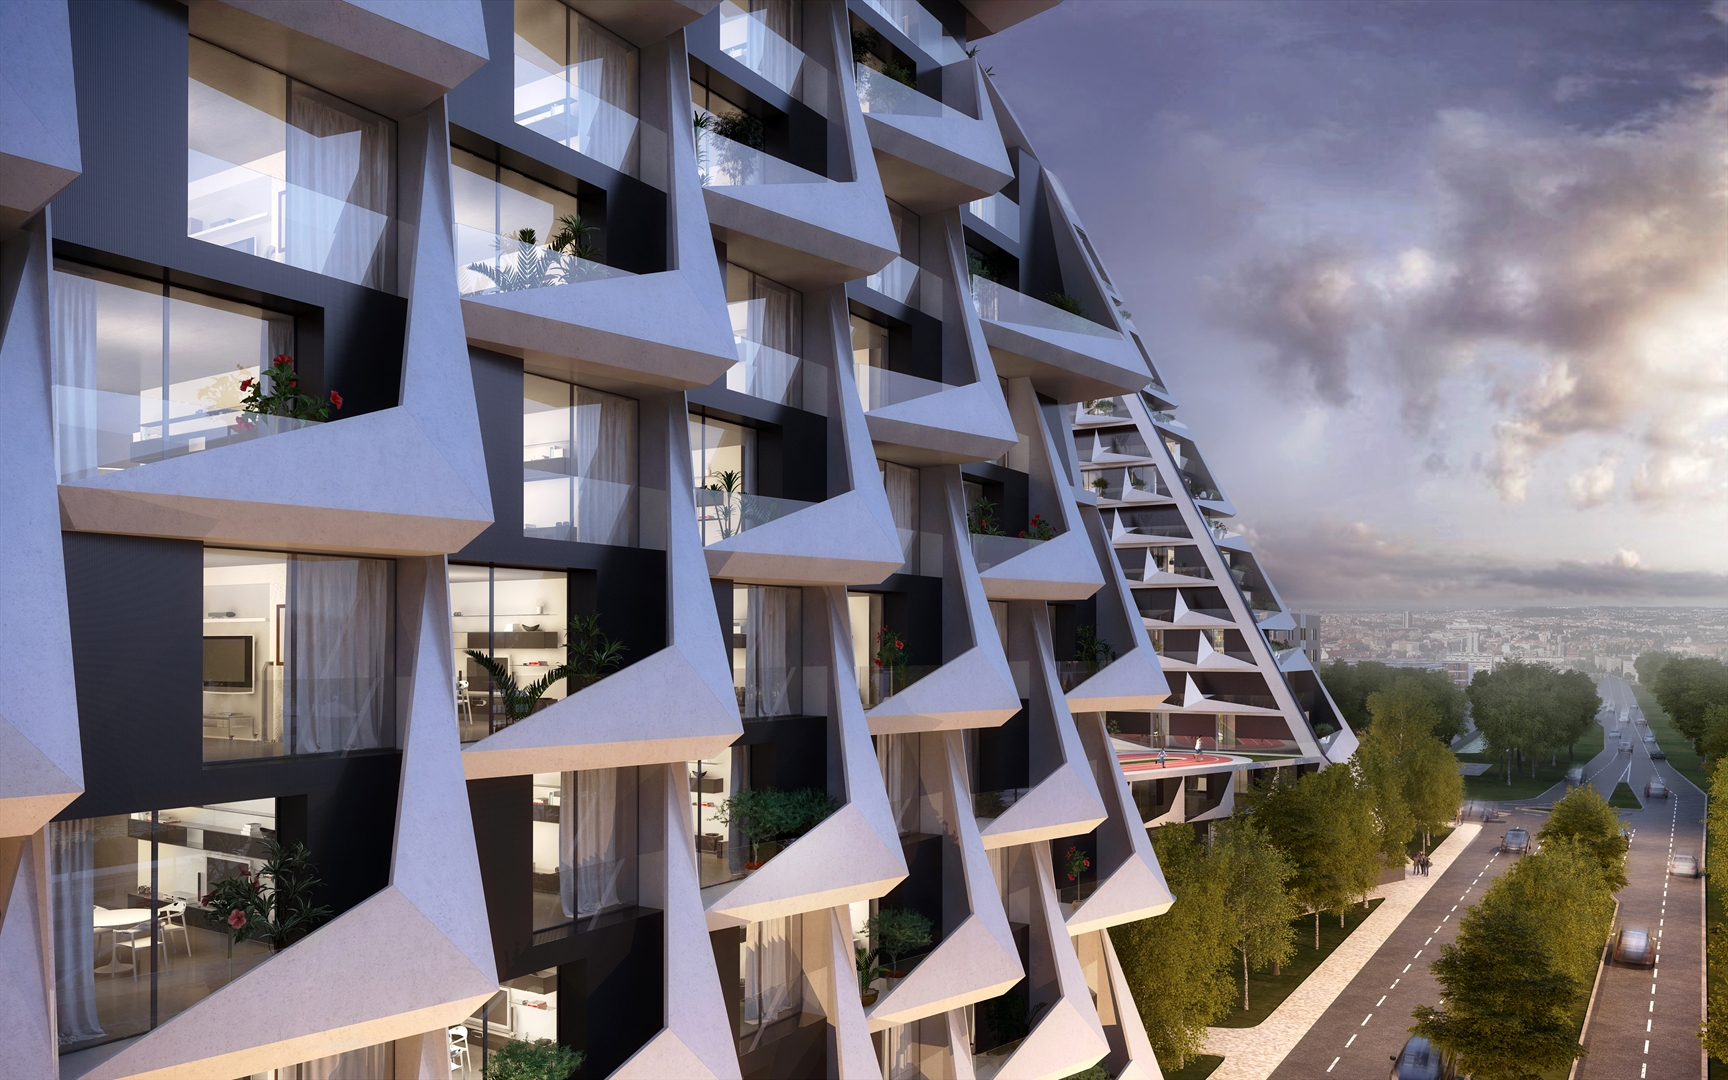 04_Peter_Pichler_Architecture_looping_towers_Netherlands_FACADE_CLOSE_UP_1 (Copy)